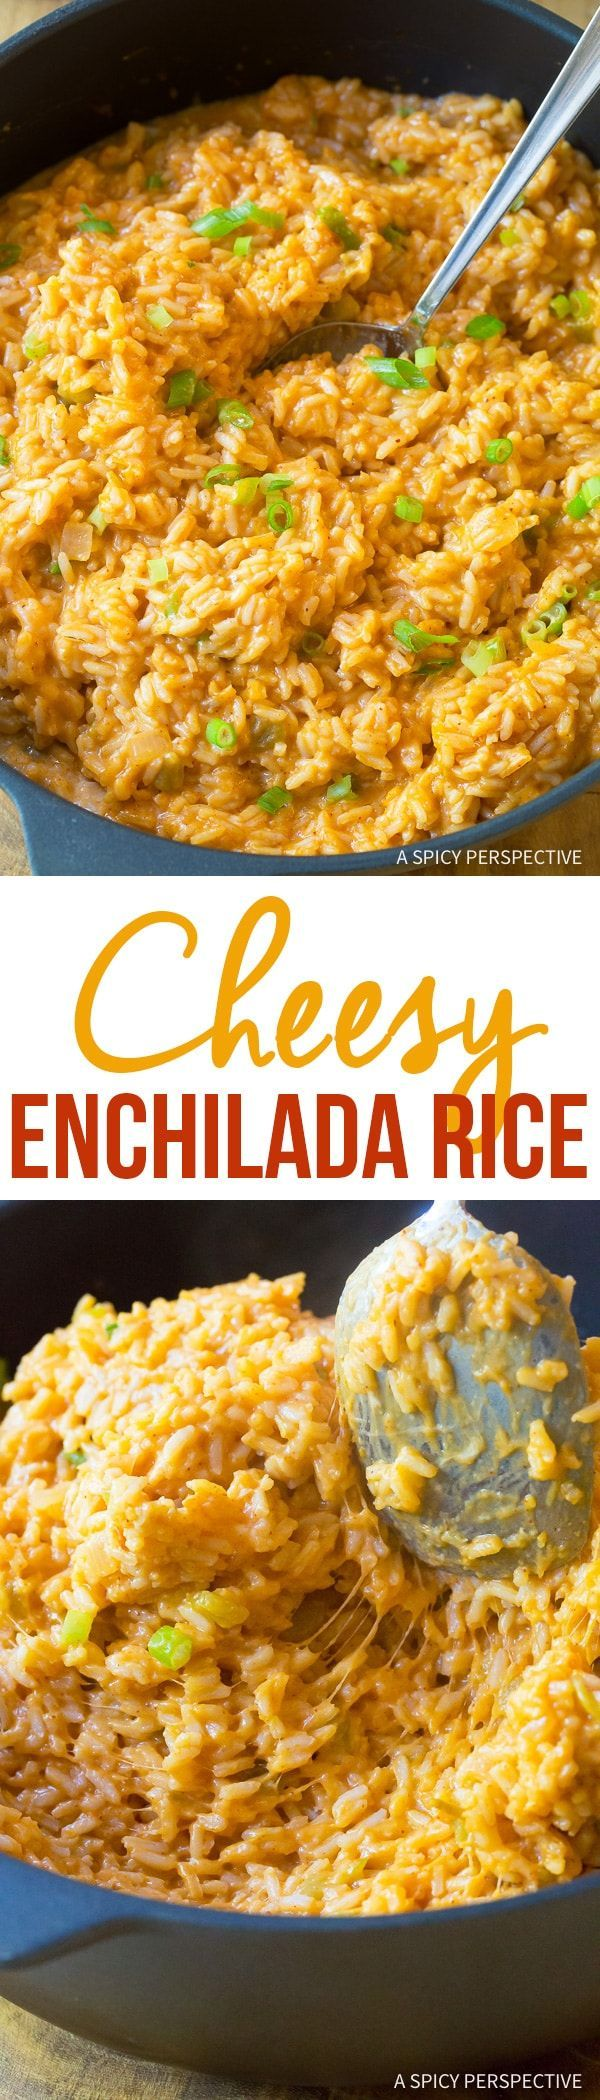 Cheesy Enchilada Rice Recipe – Creamy spicy Mexican rice similar to  risotto. This bold and fragrant rice makes a fabulous side dish for  grilled chicken, pork, or beef.